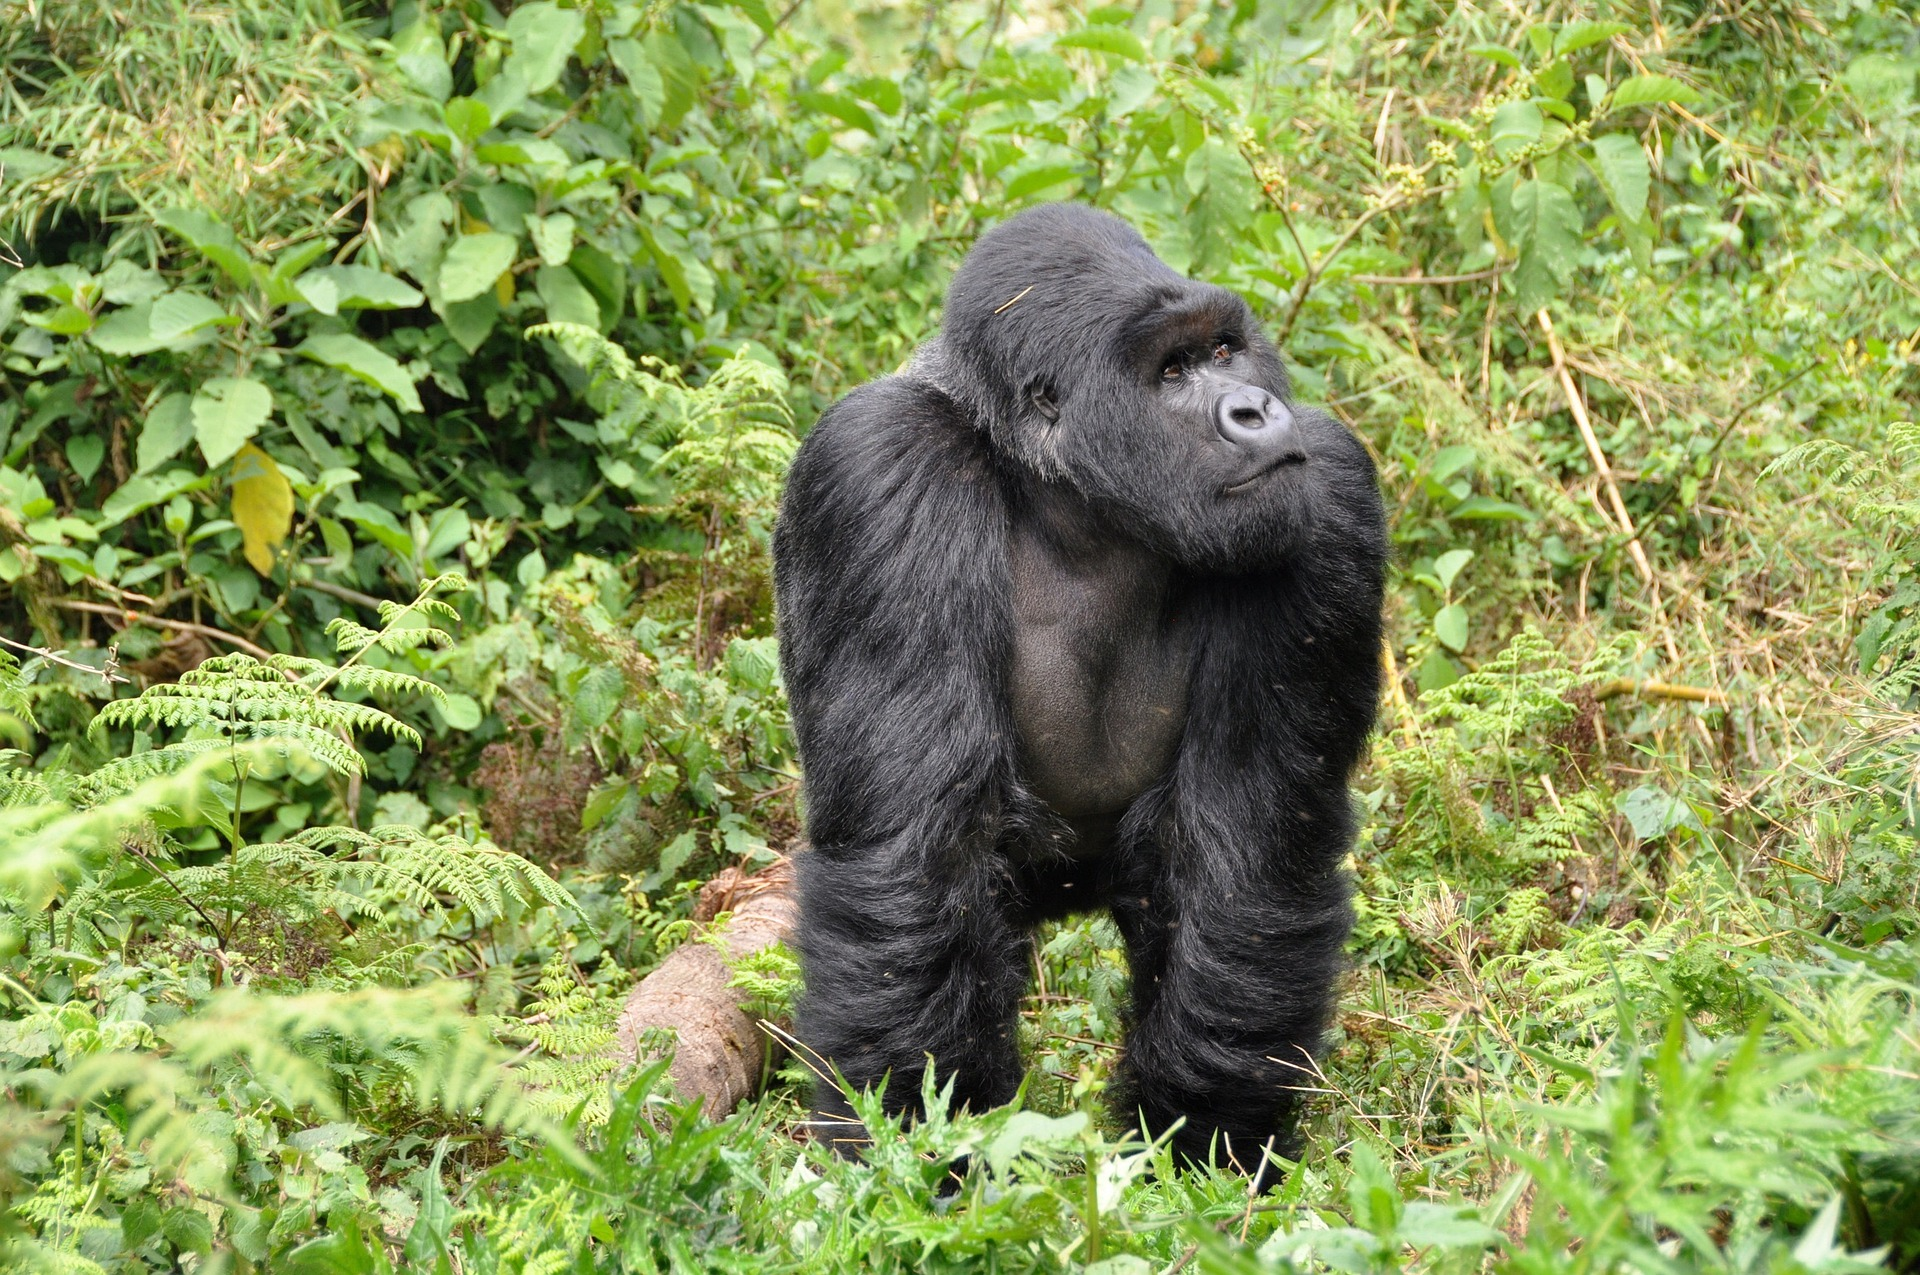 Gorilla trekking is a must-have experience in Africa.